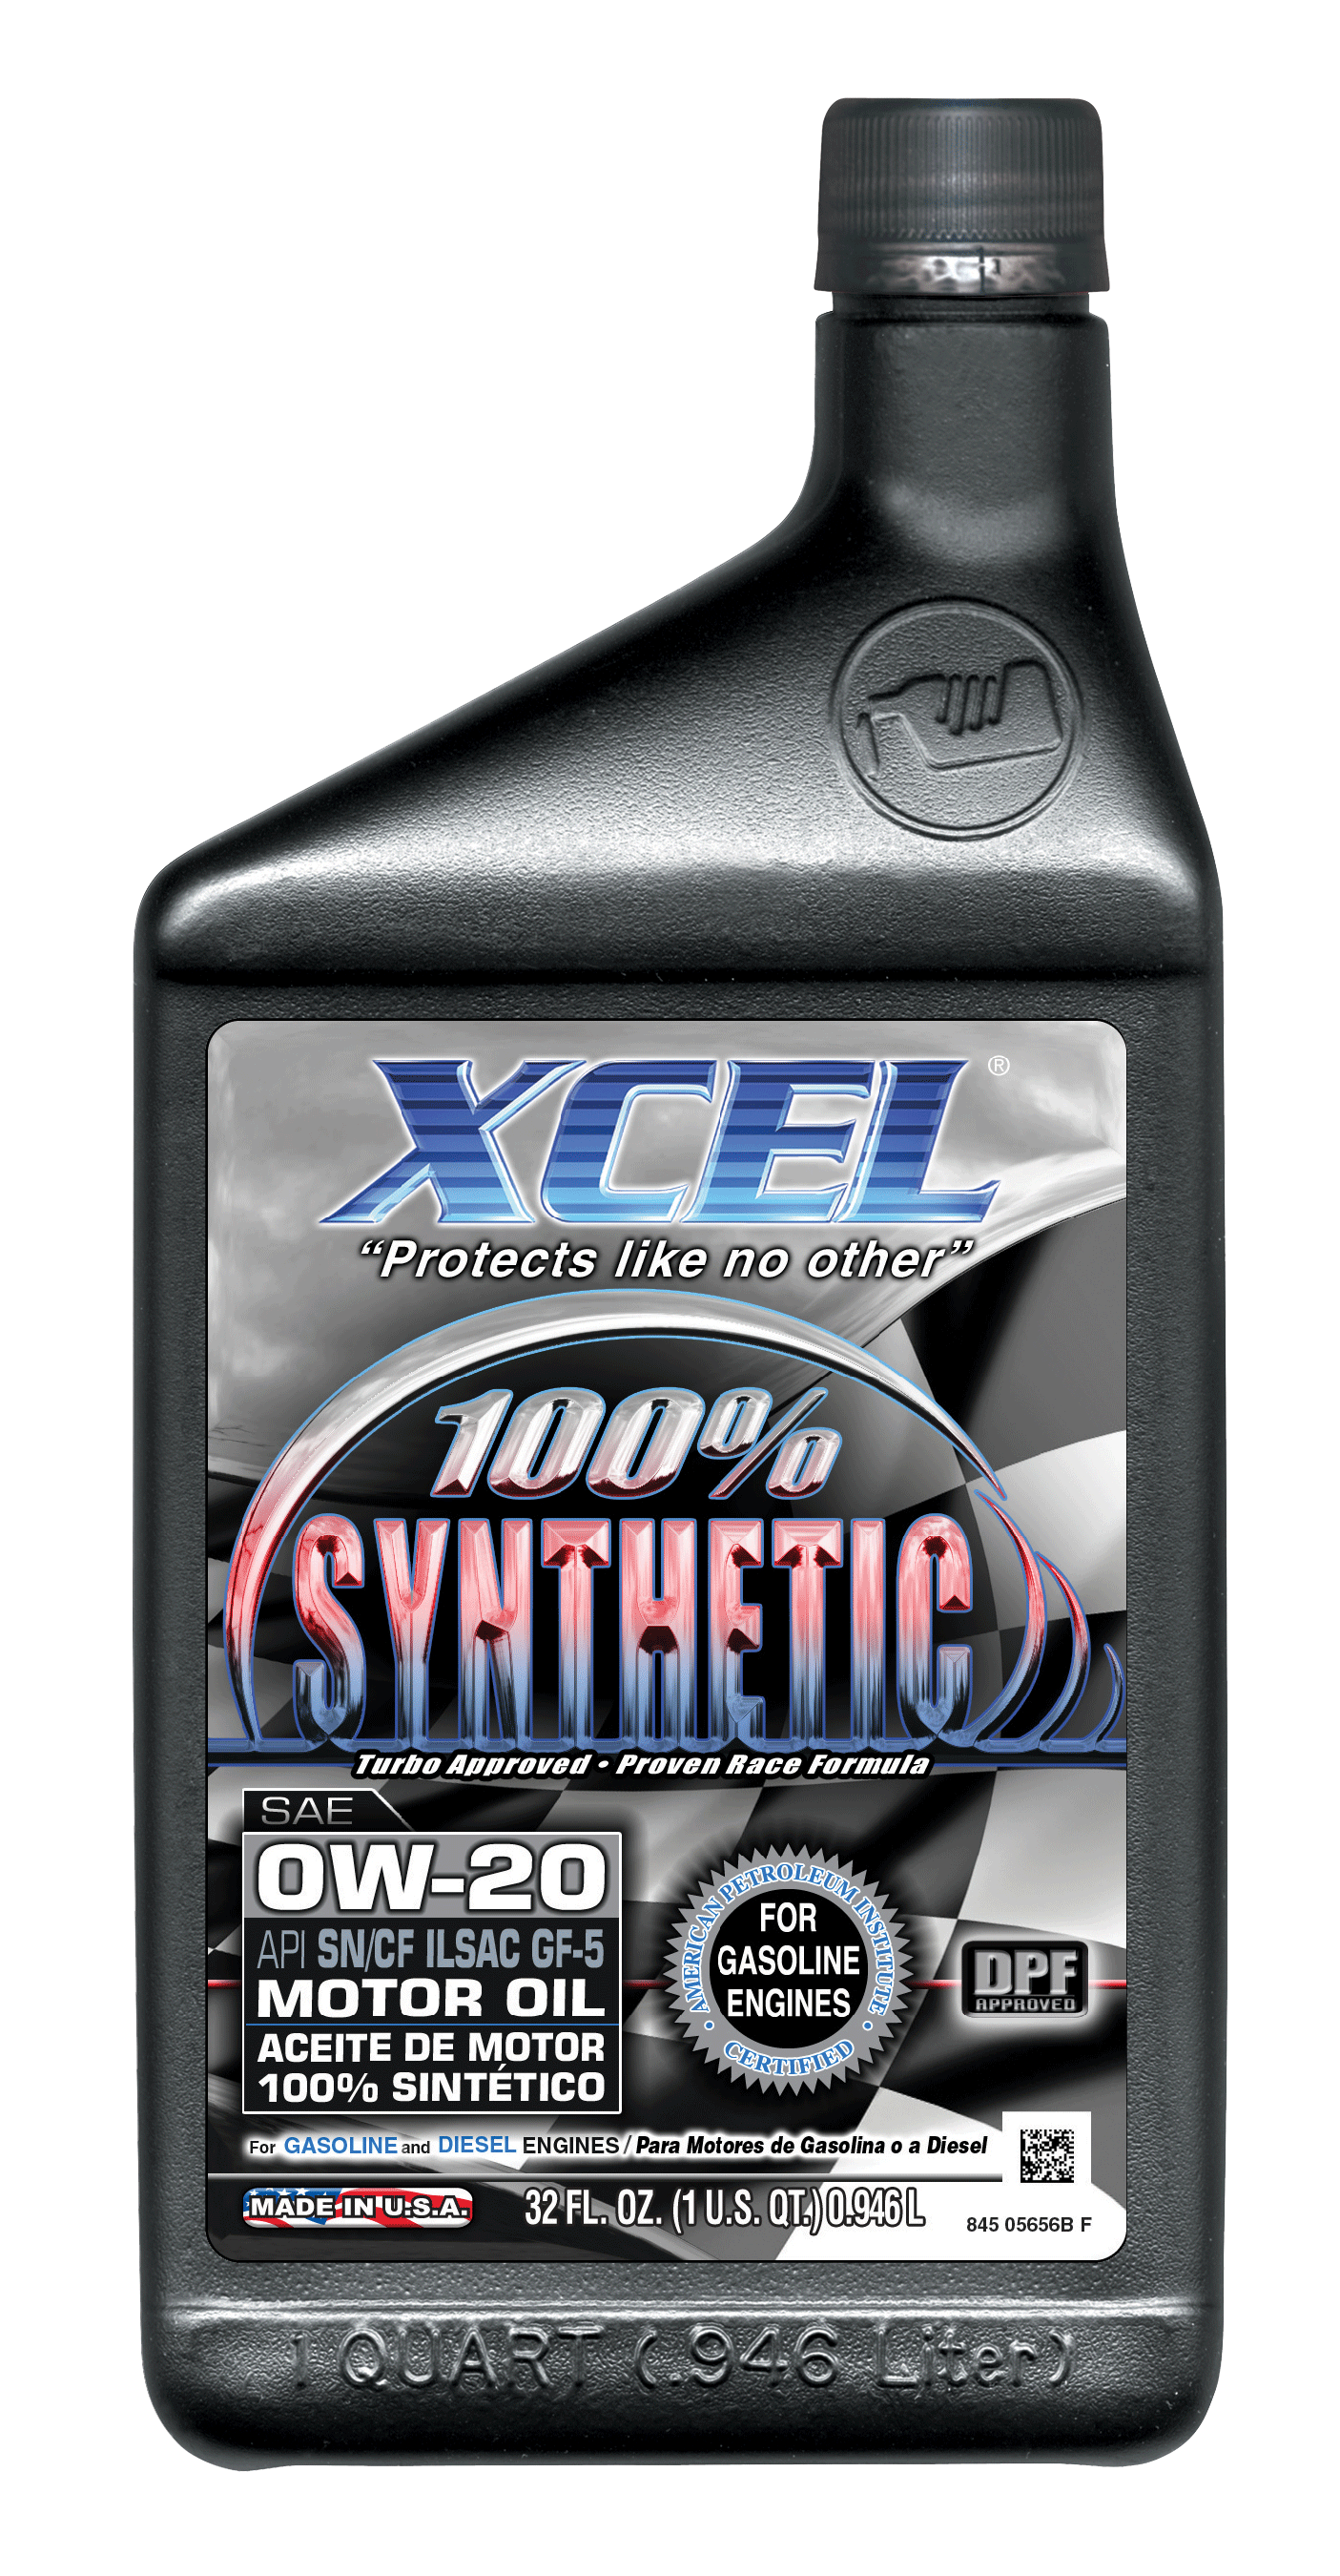 Xcel lubricants 100 synthetic for Synthetic motor oil for diesel engines